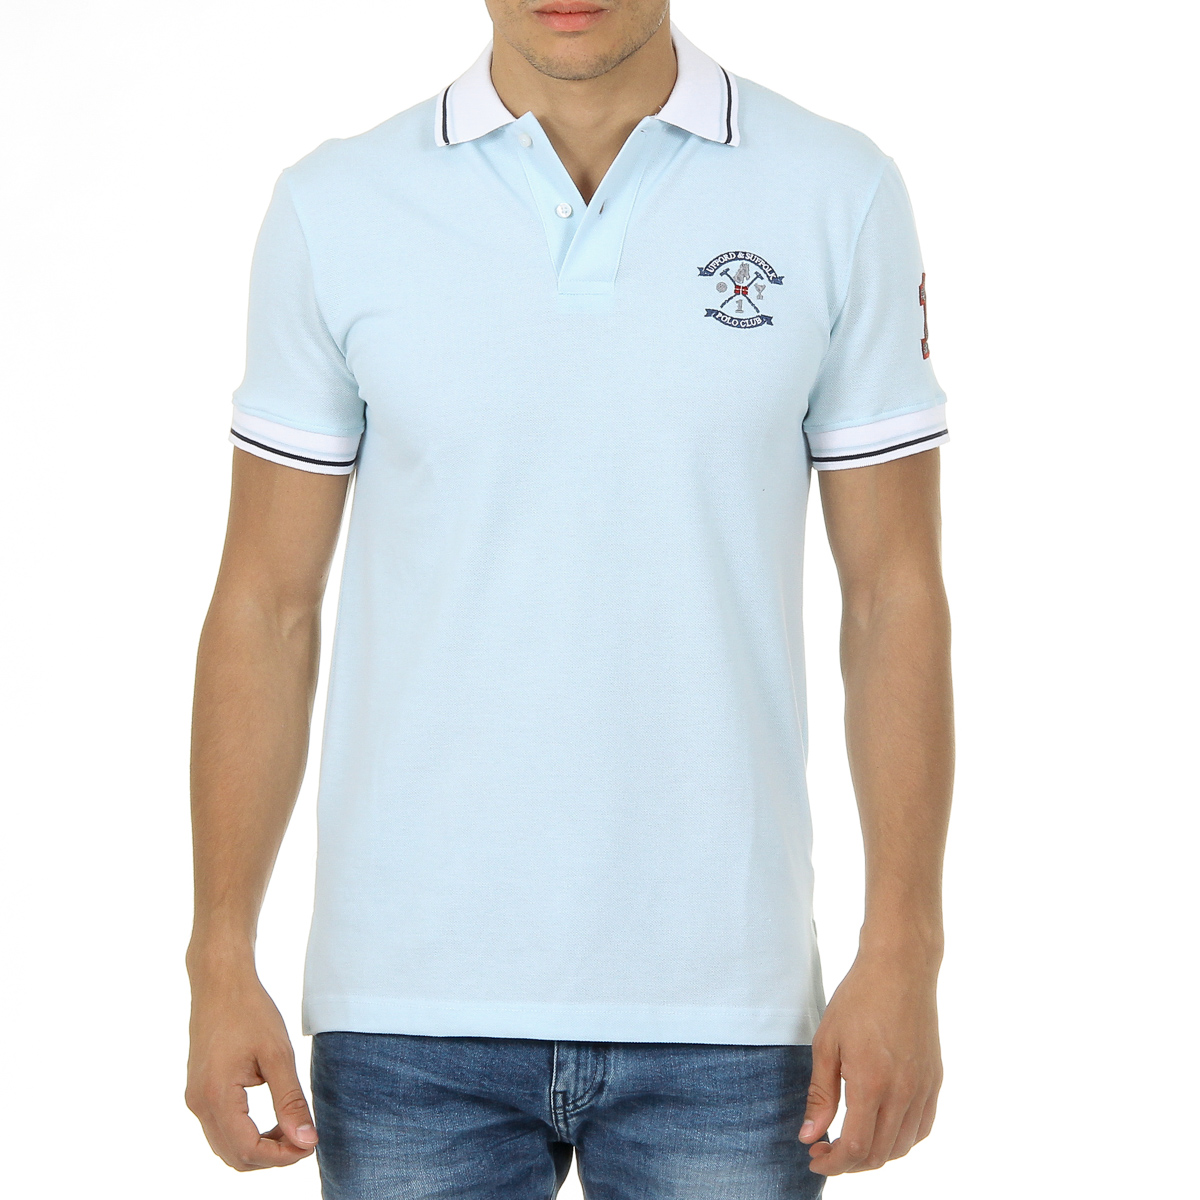 Primary image for Ufford & Suffolk Polo Club Mens Polo Short Sleeves Light Blue KID